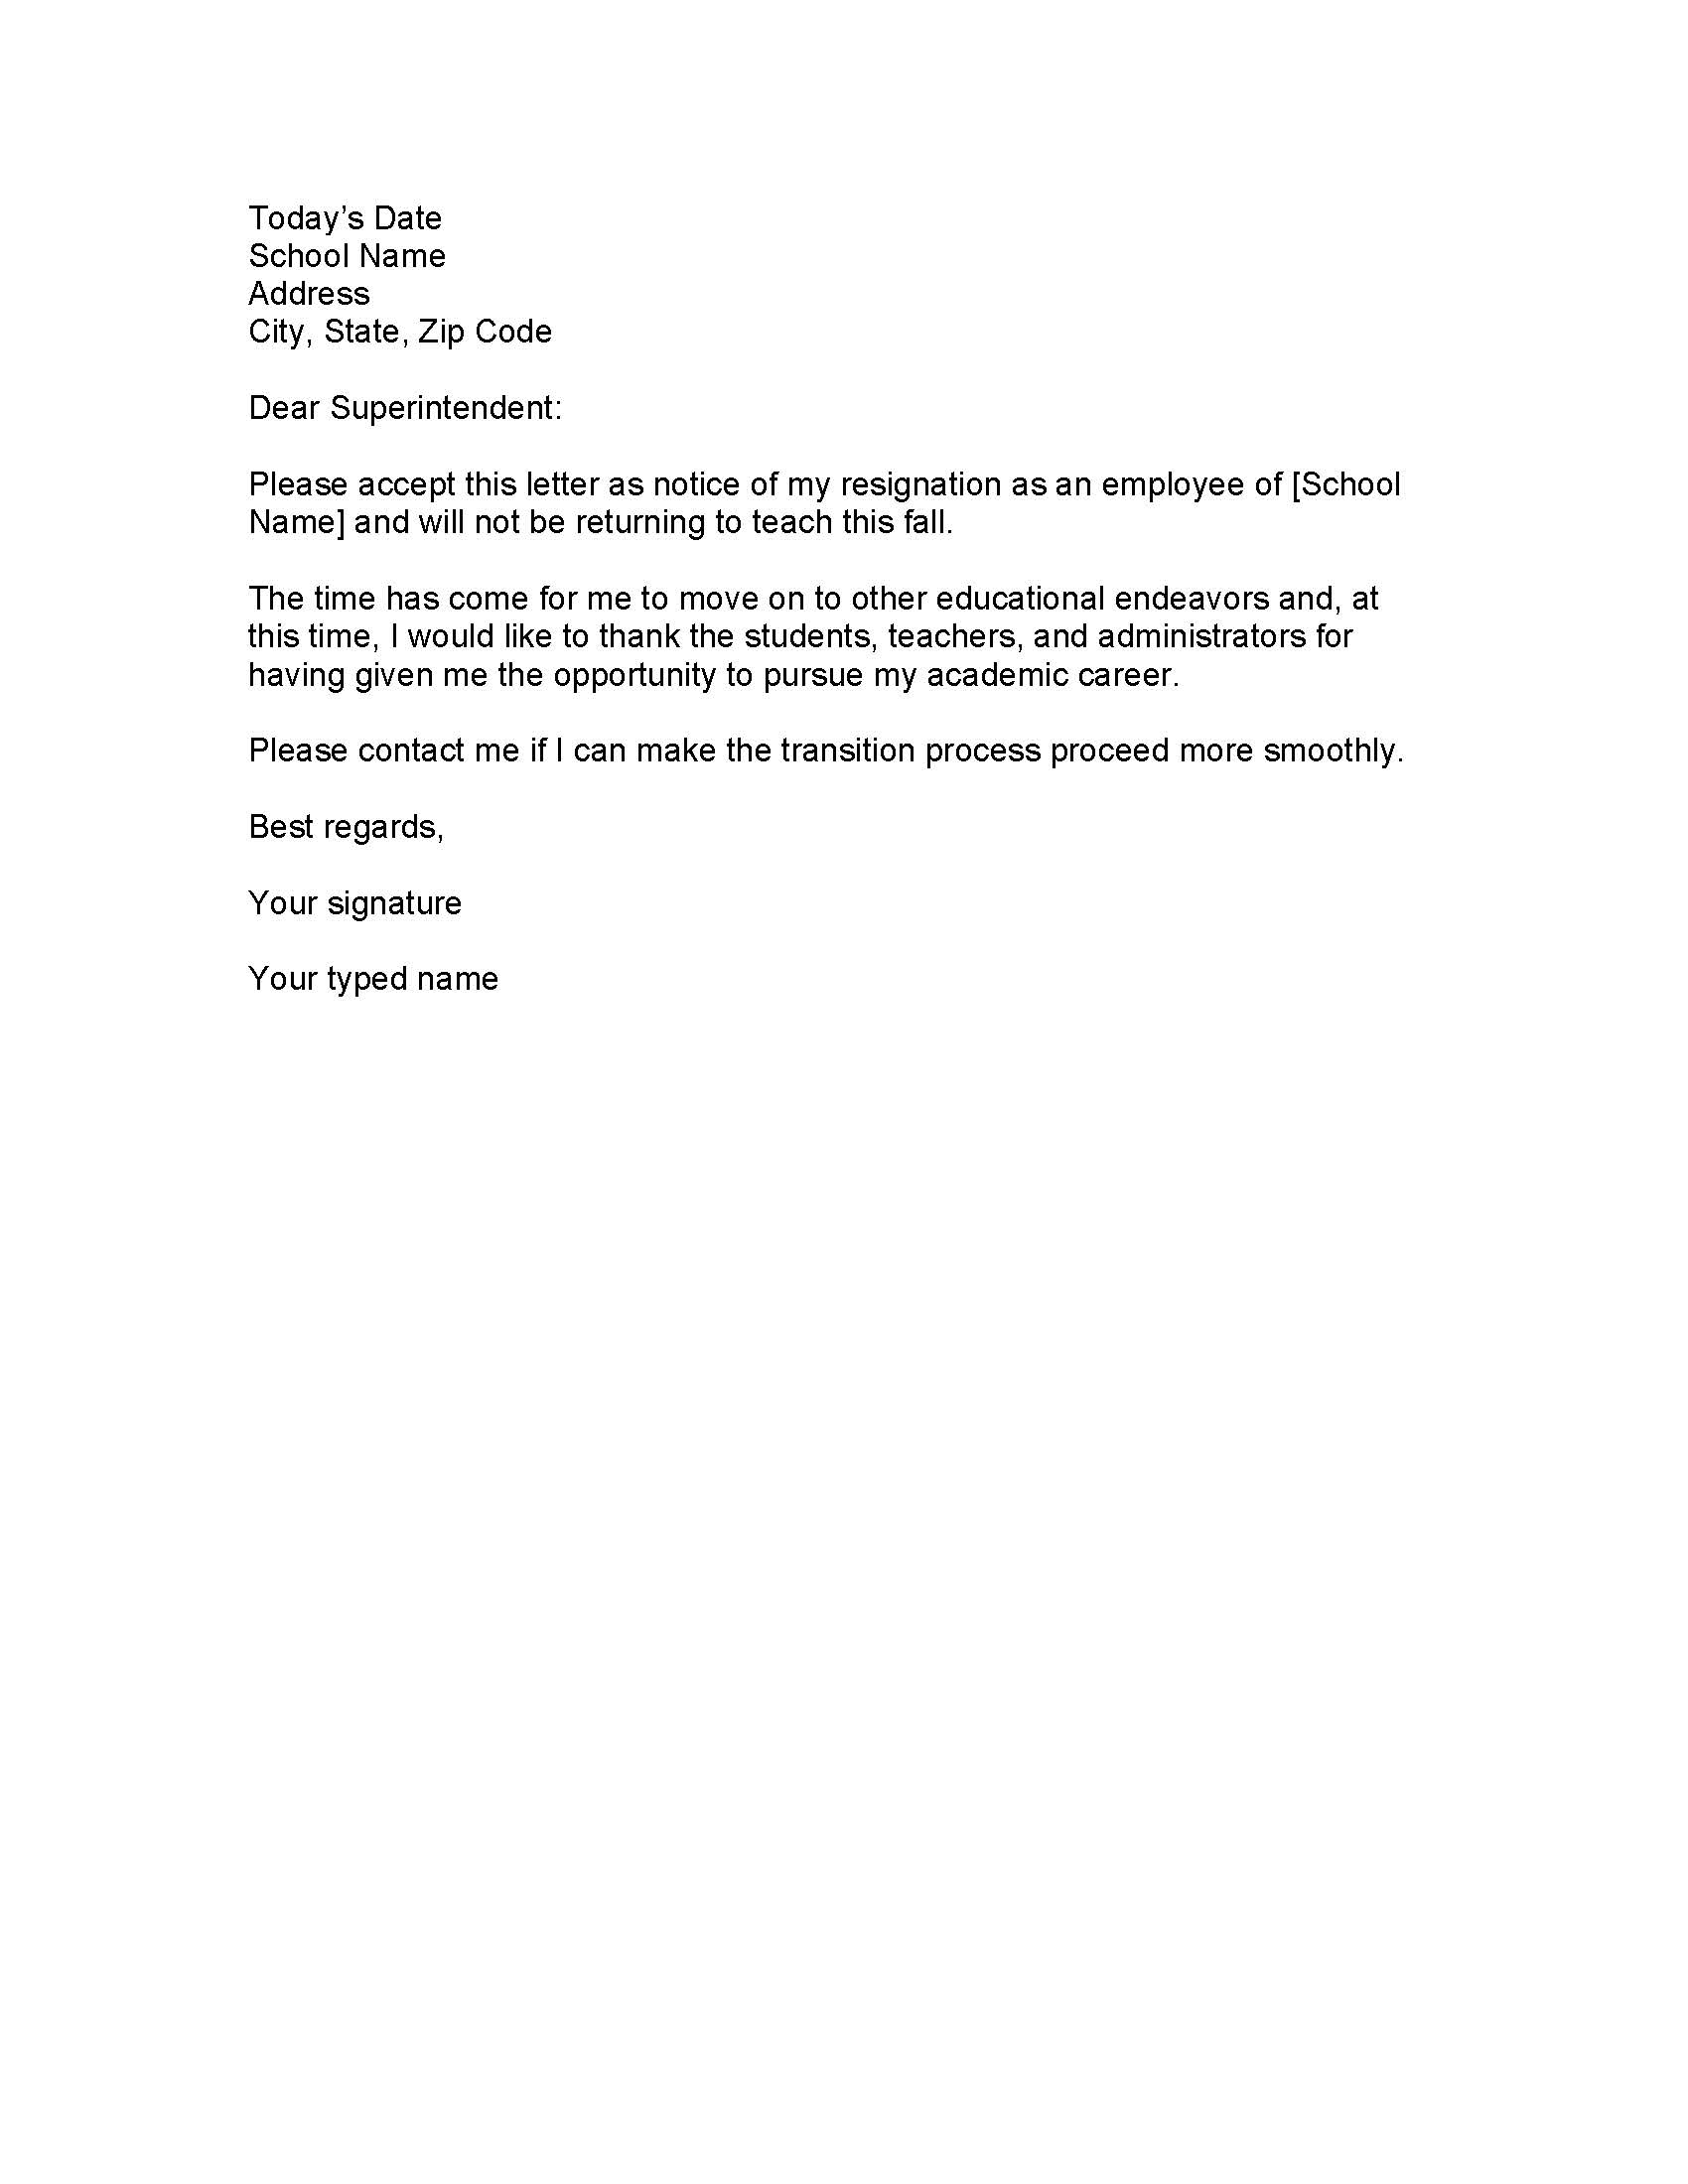 letter of resignation due to retirement sample. Resume Example. Resume CV Cover Letter